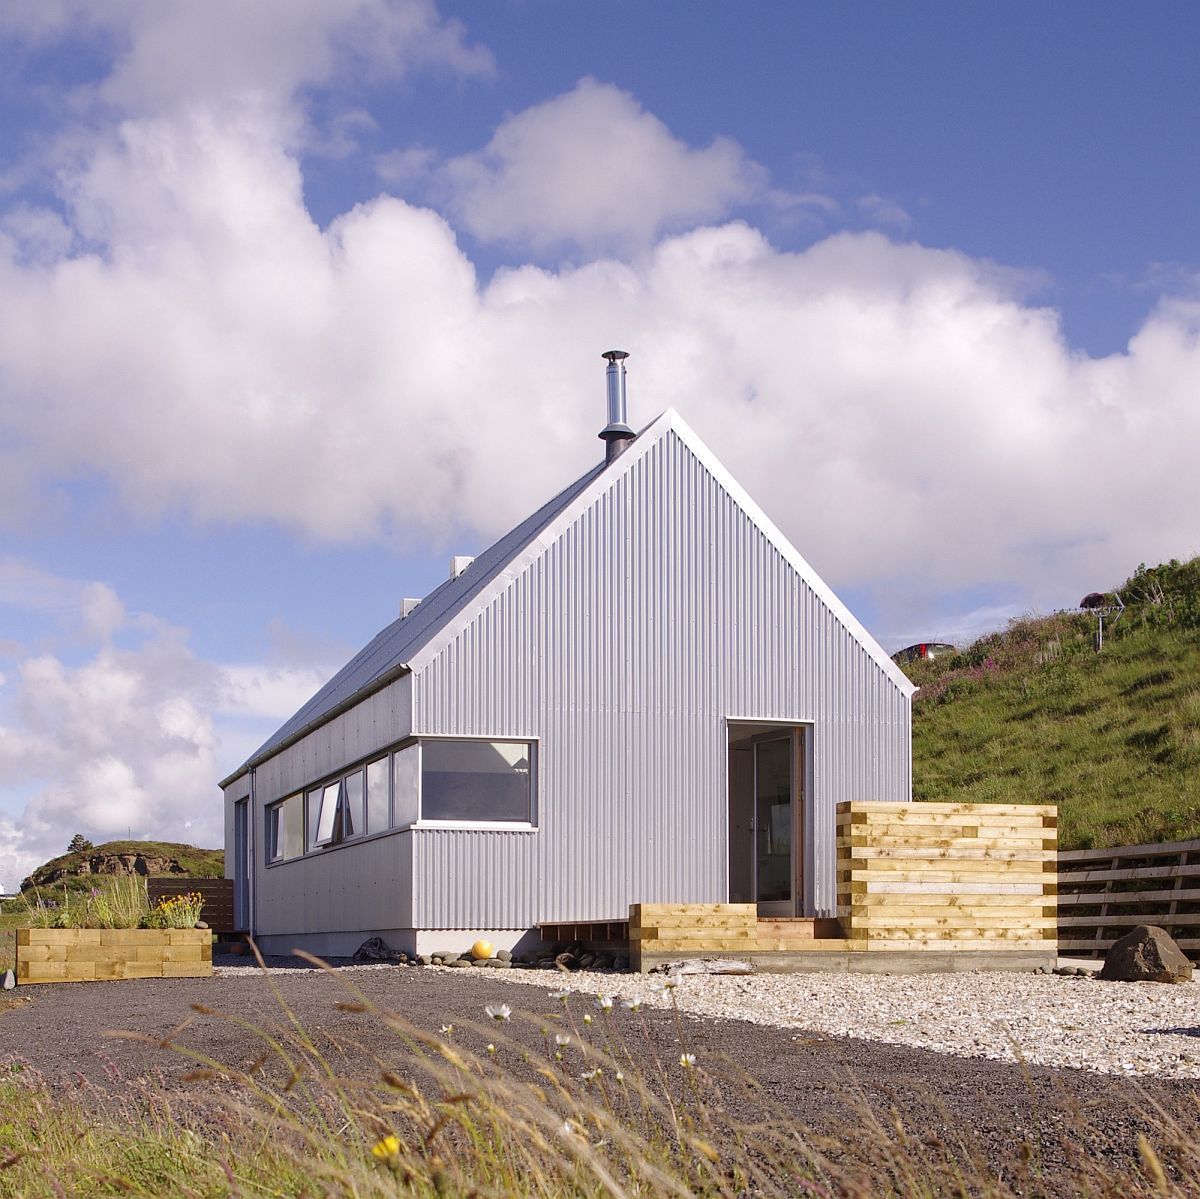 Metal and glass exterior of the Tinhouse combines farmhouse look with modern aesthetics